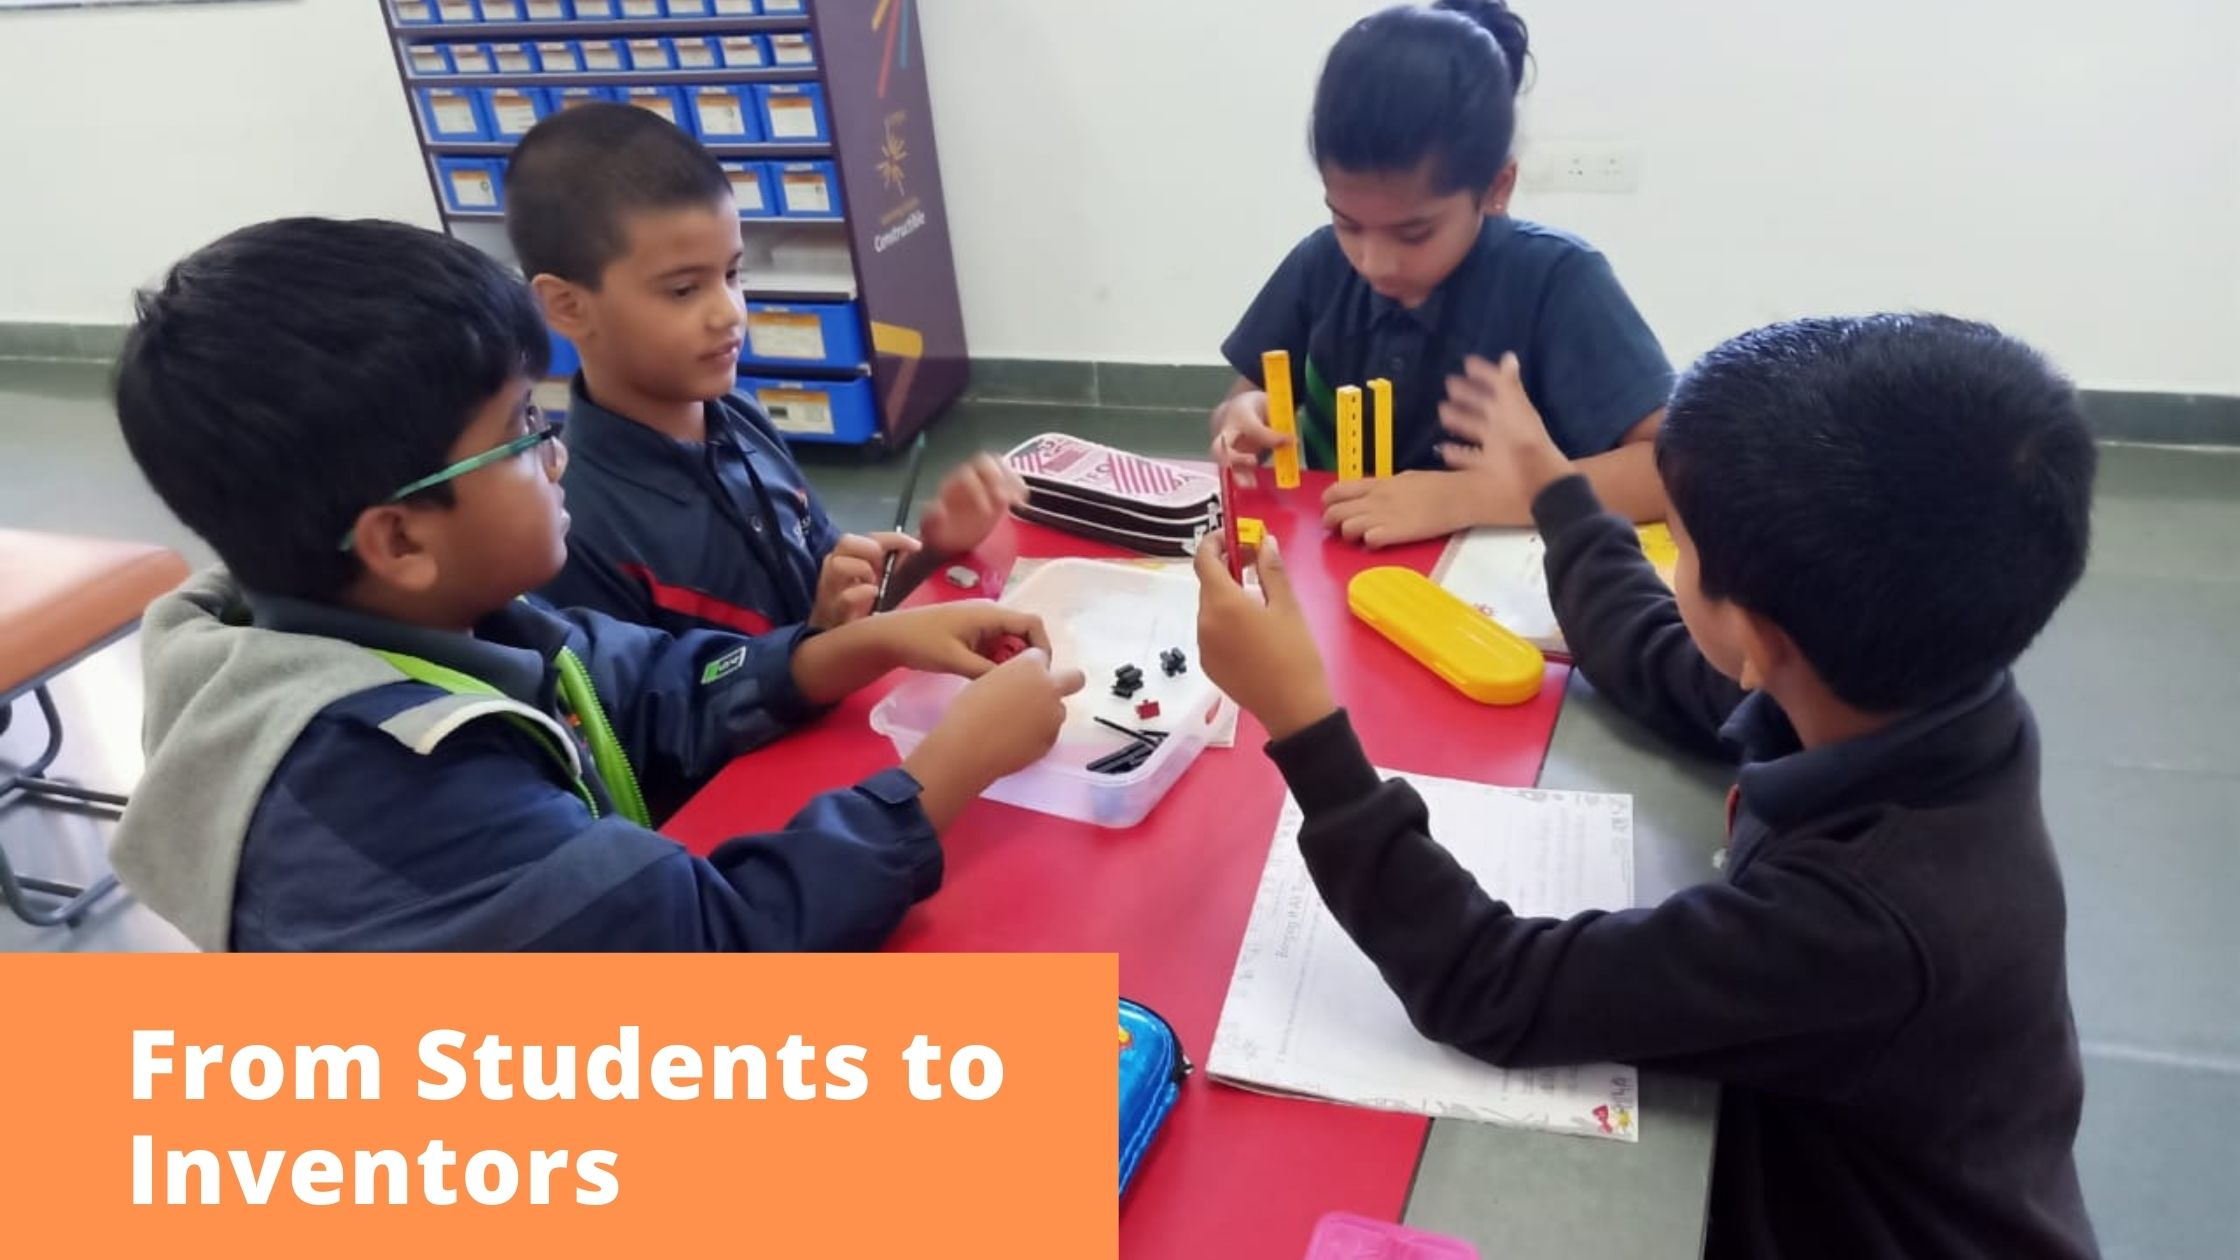 From Students to Inventors or Innnovators - Samashti STEAM Lab